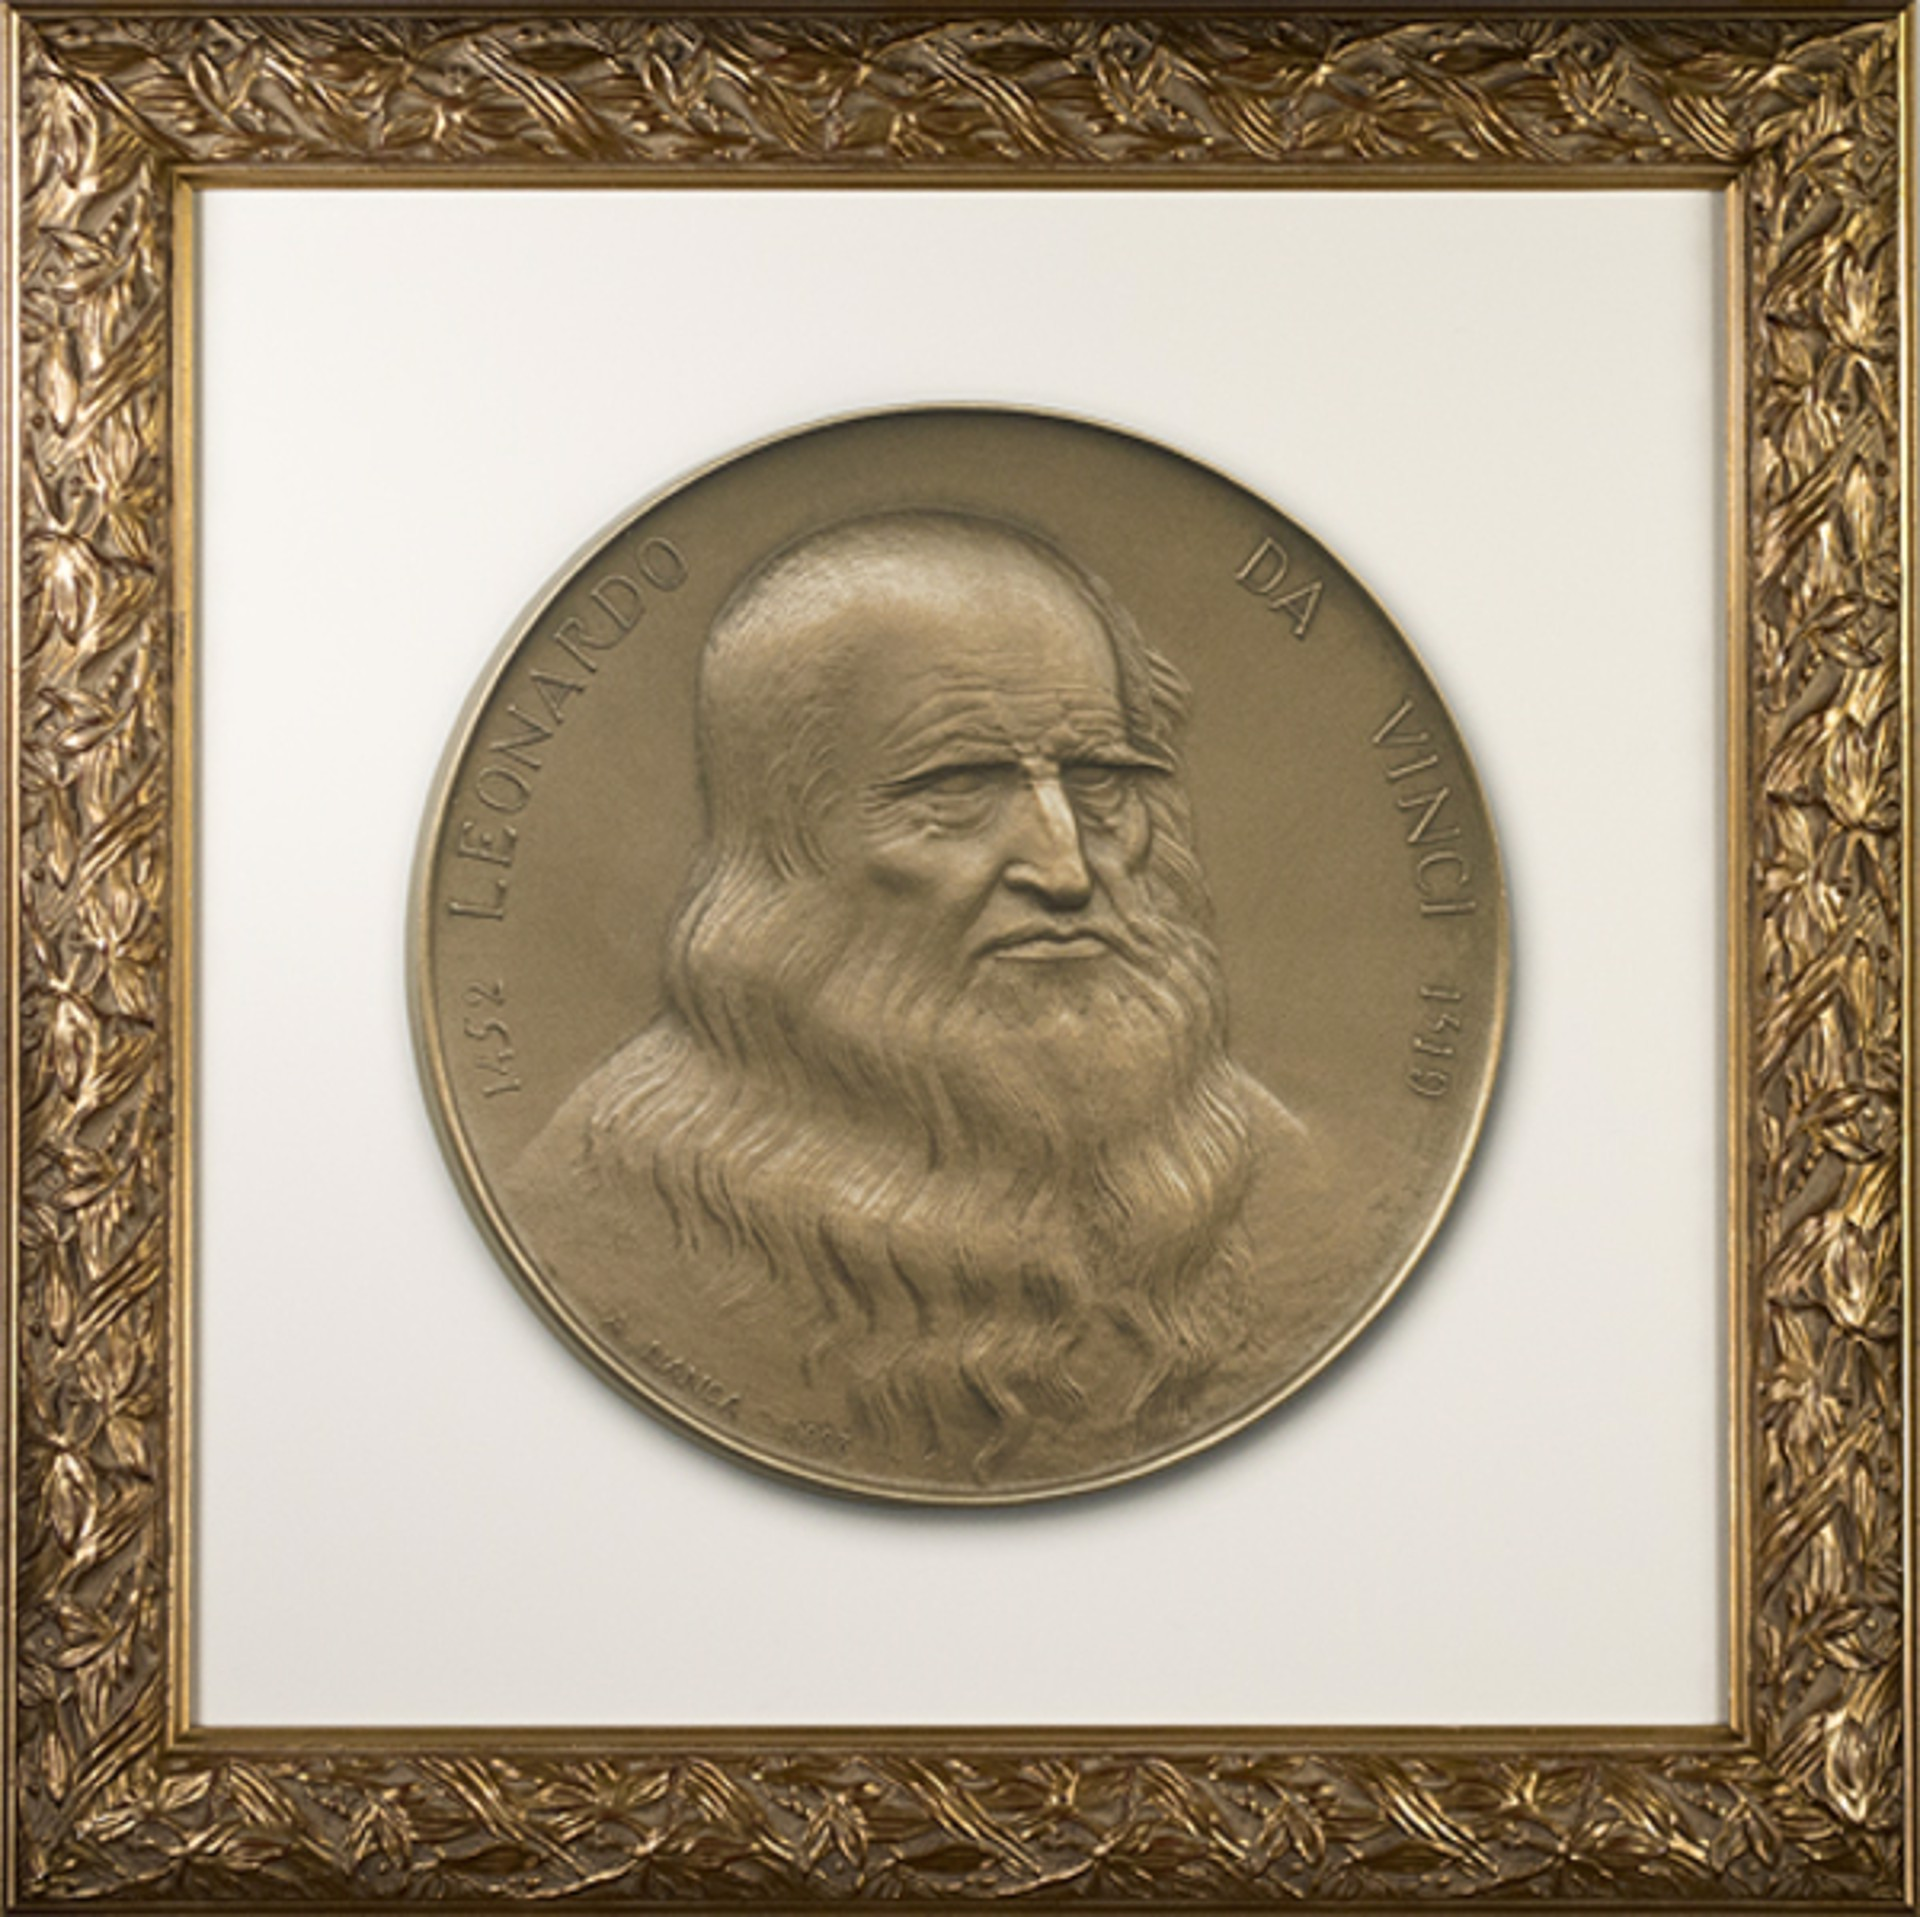 """Leonard da Vinci """"Masterpieces in Medals"""" Series (To be sold as pair with 13634g-Mona Lisa) by Albino Manca"""